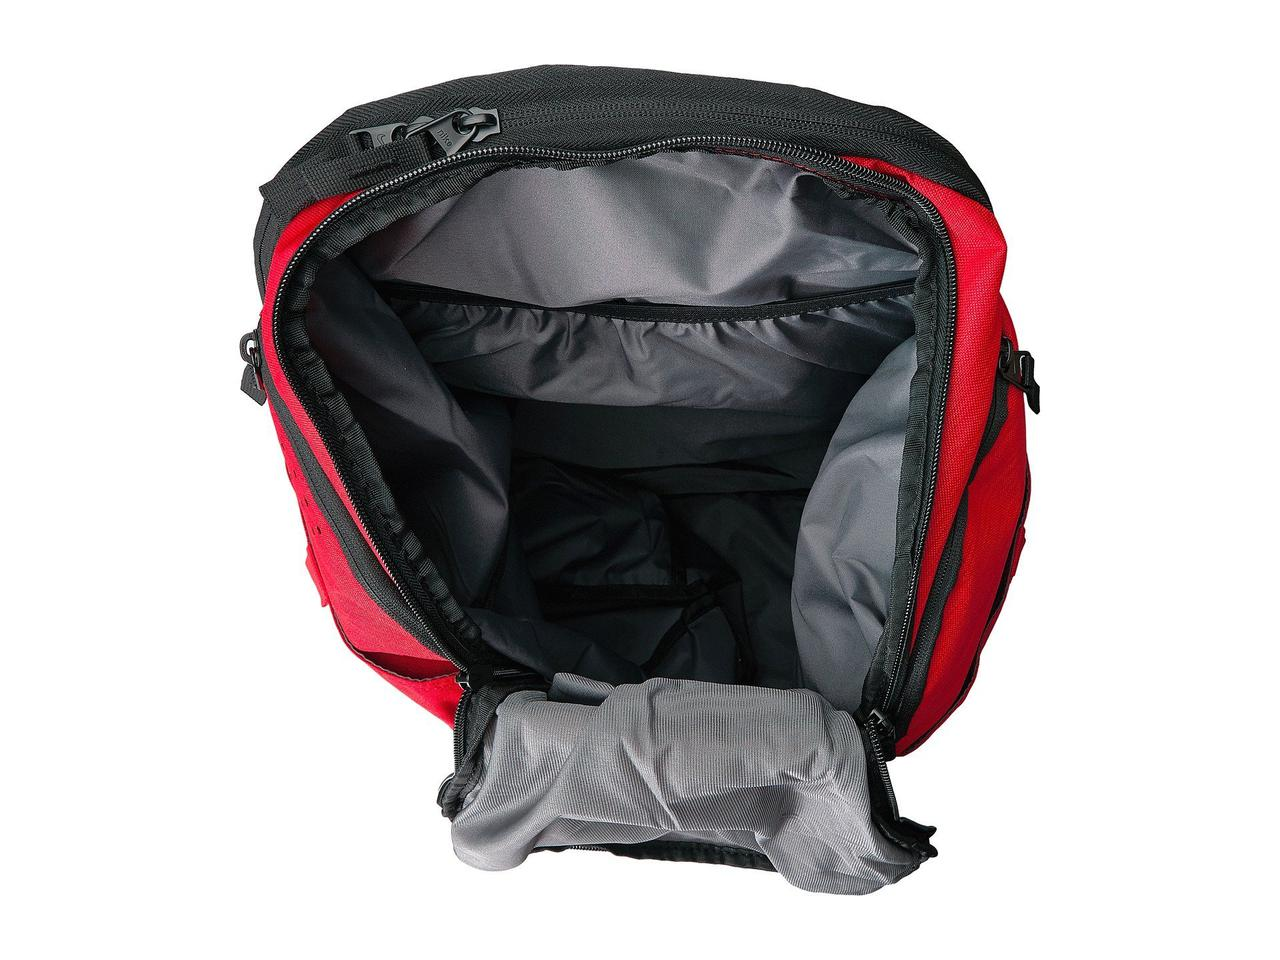 91601009644057 ... Рюкзак (Оригинал) Nike Hoops Elite Pro Backpack University  Red Black Metallic Cool ...